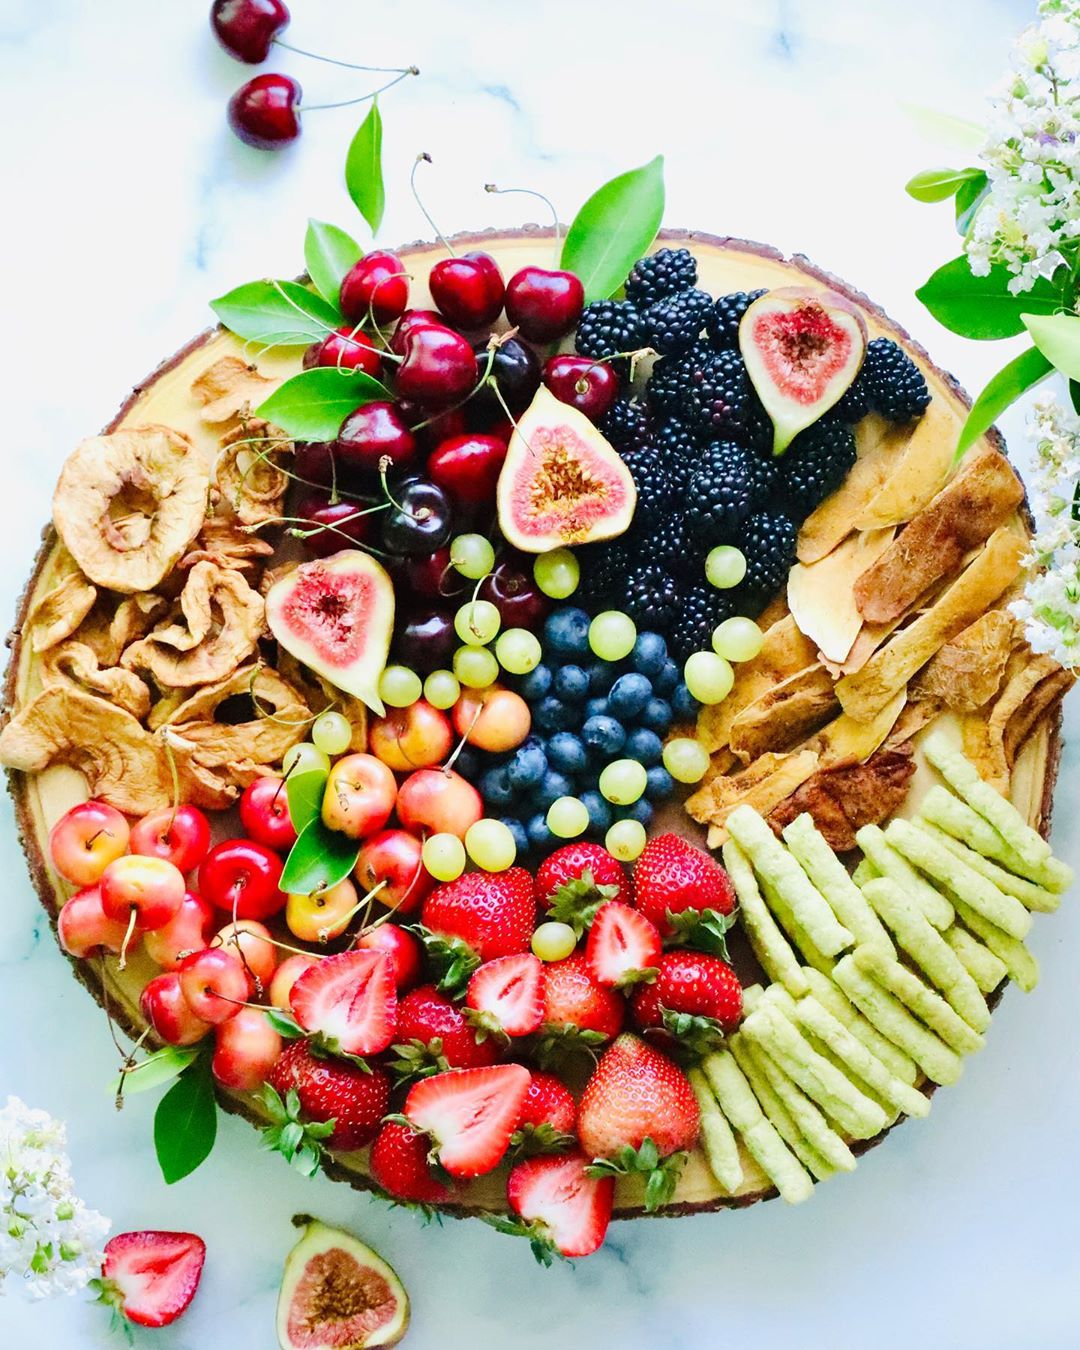 plate with fresh fruits and our snacks